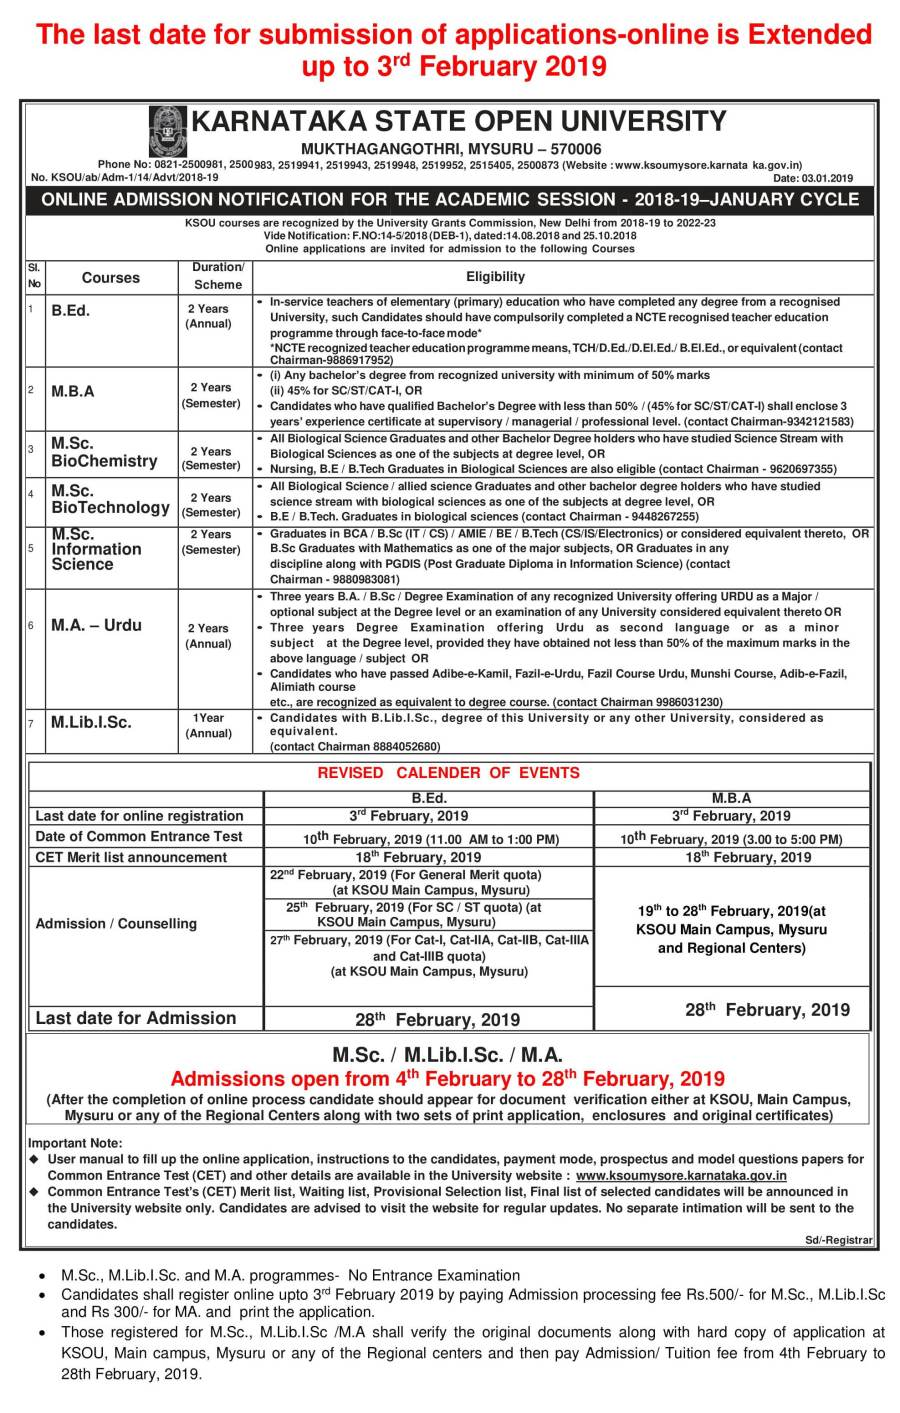 Extended admission notification (03.01.2019) (FINAL) (1)-1.jpg